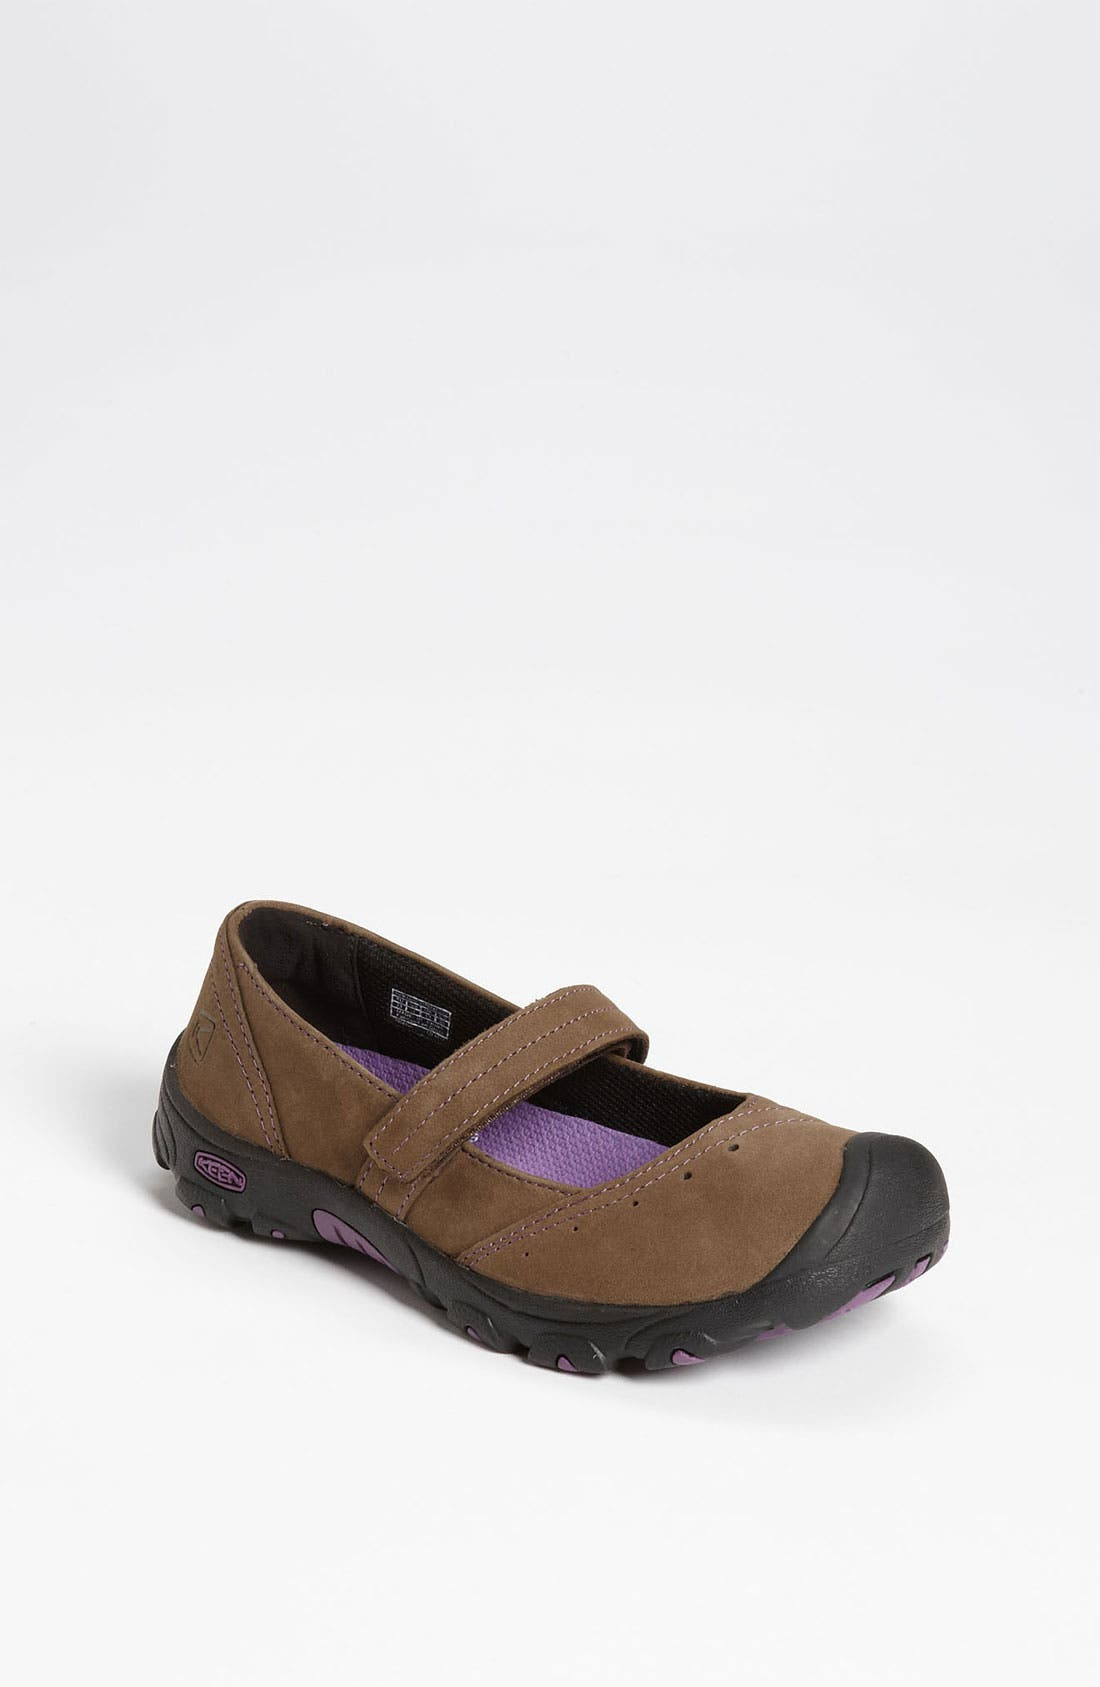 Main Image - Keen 'Libby' Slip-On (Walker, Toddler, Little Kid & Big Kid)